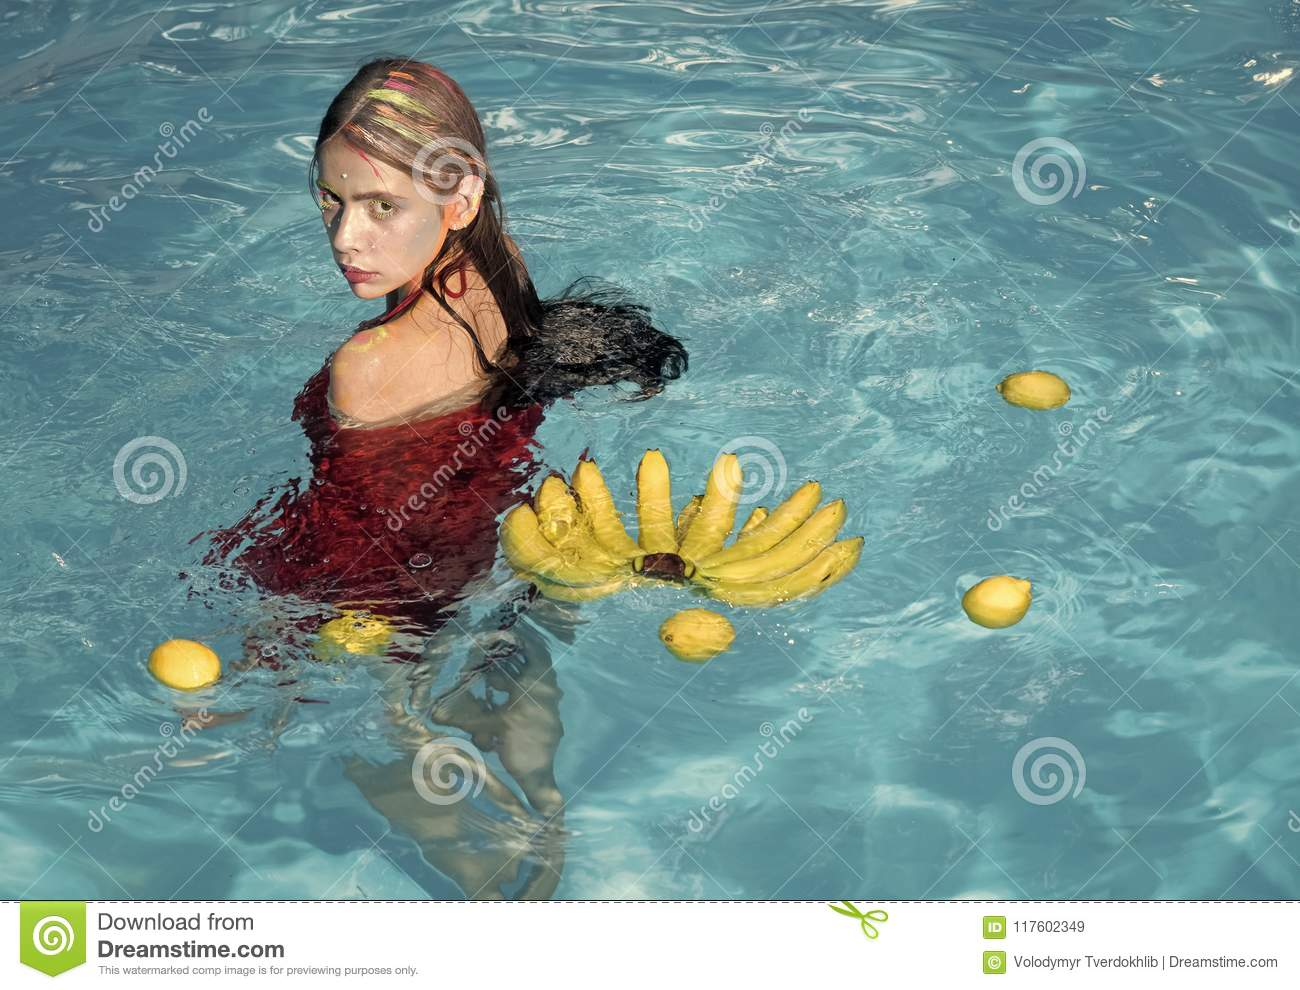 Woman face beauty. Summer vacation and travel to ocean. Vitamin in banana at girl sitting near water. Woman relax in spa